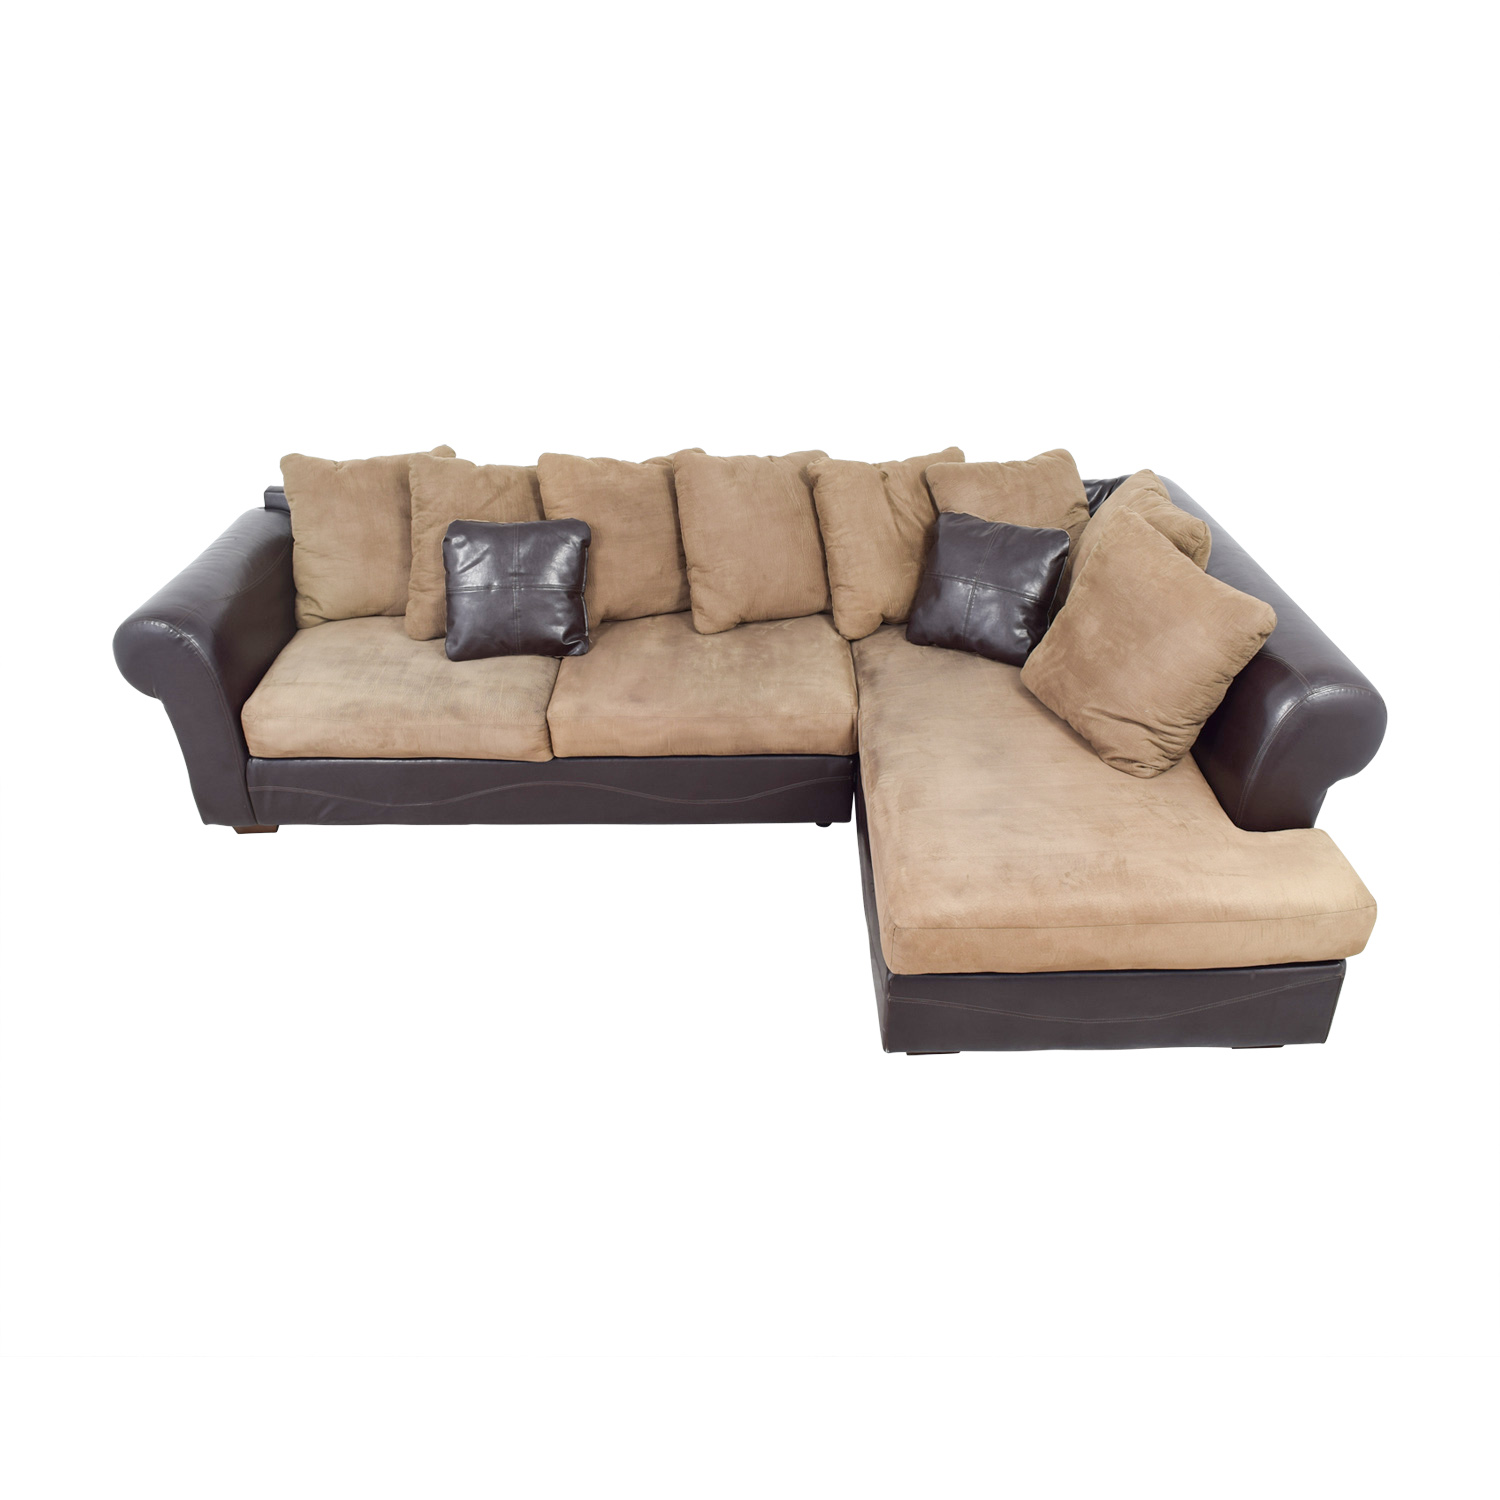 68 off ashley furniture ashley furniture brown leather and tan microfiber chaise sectional sofas